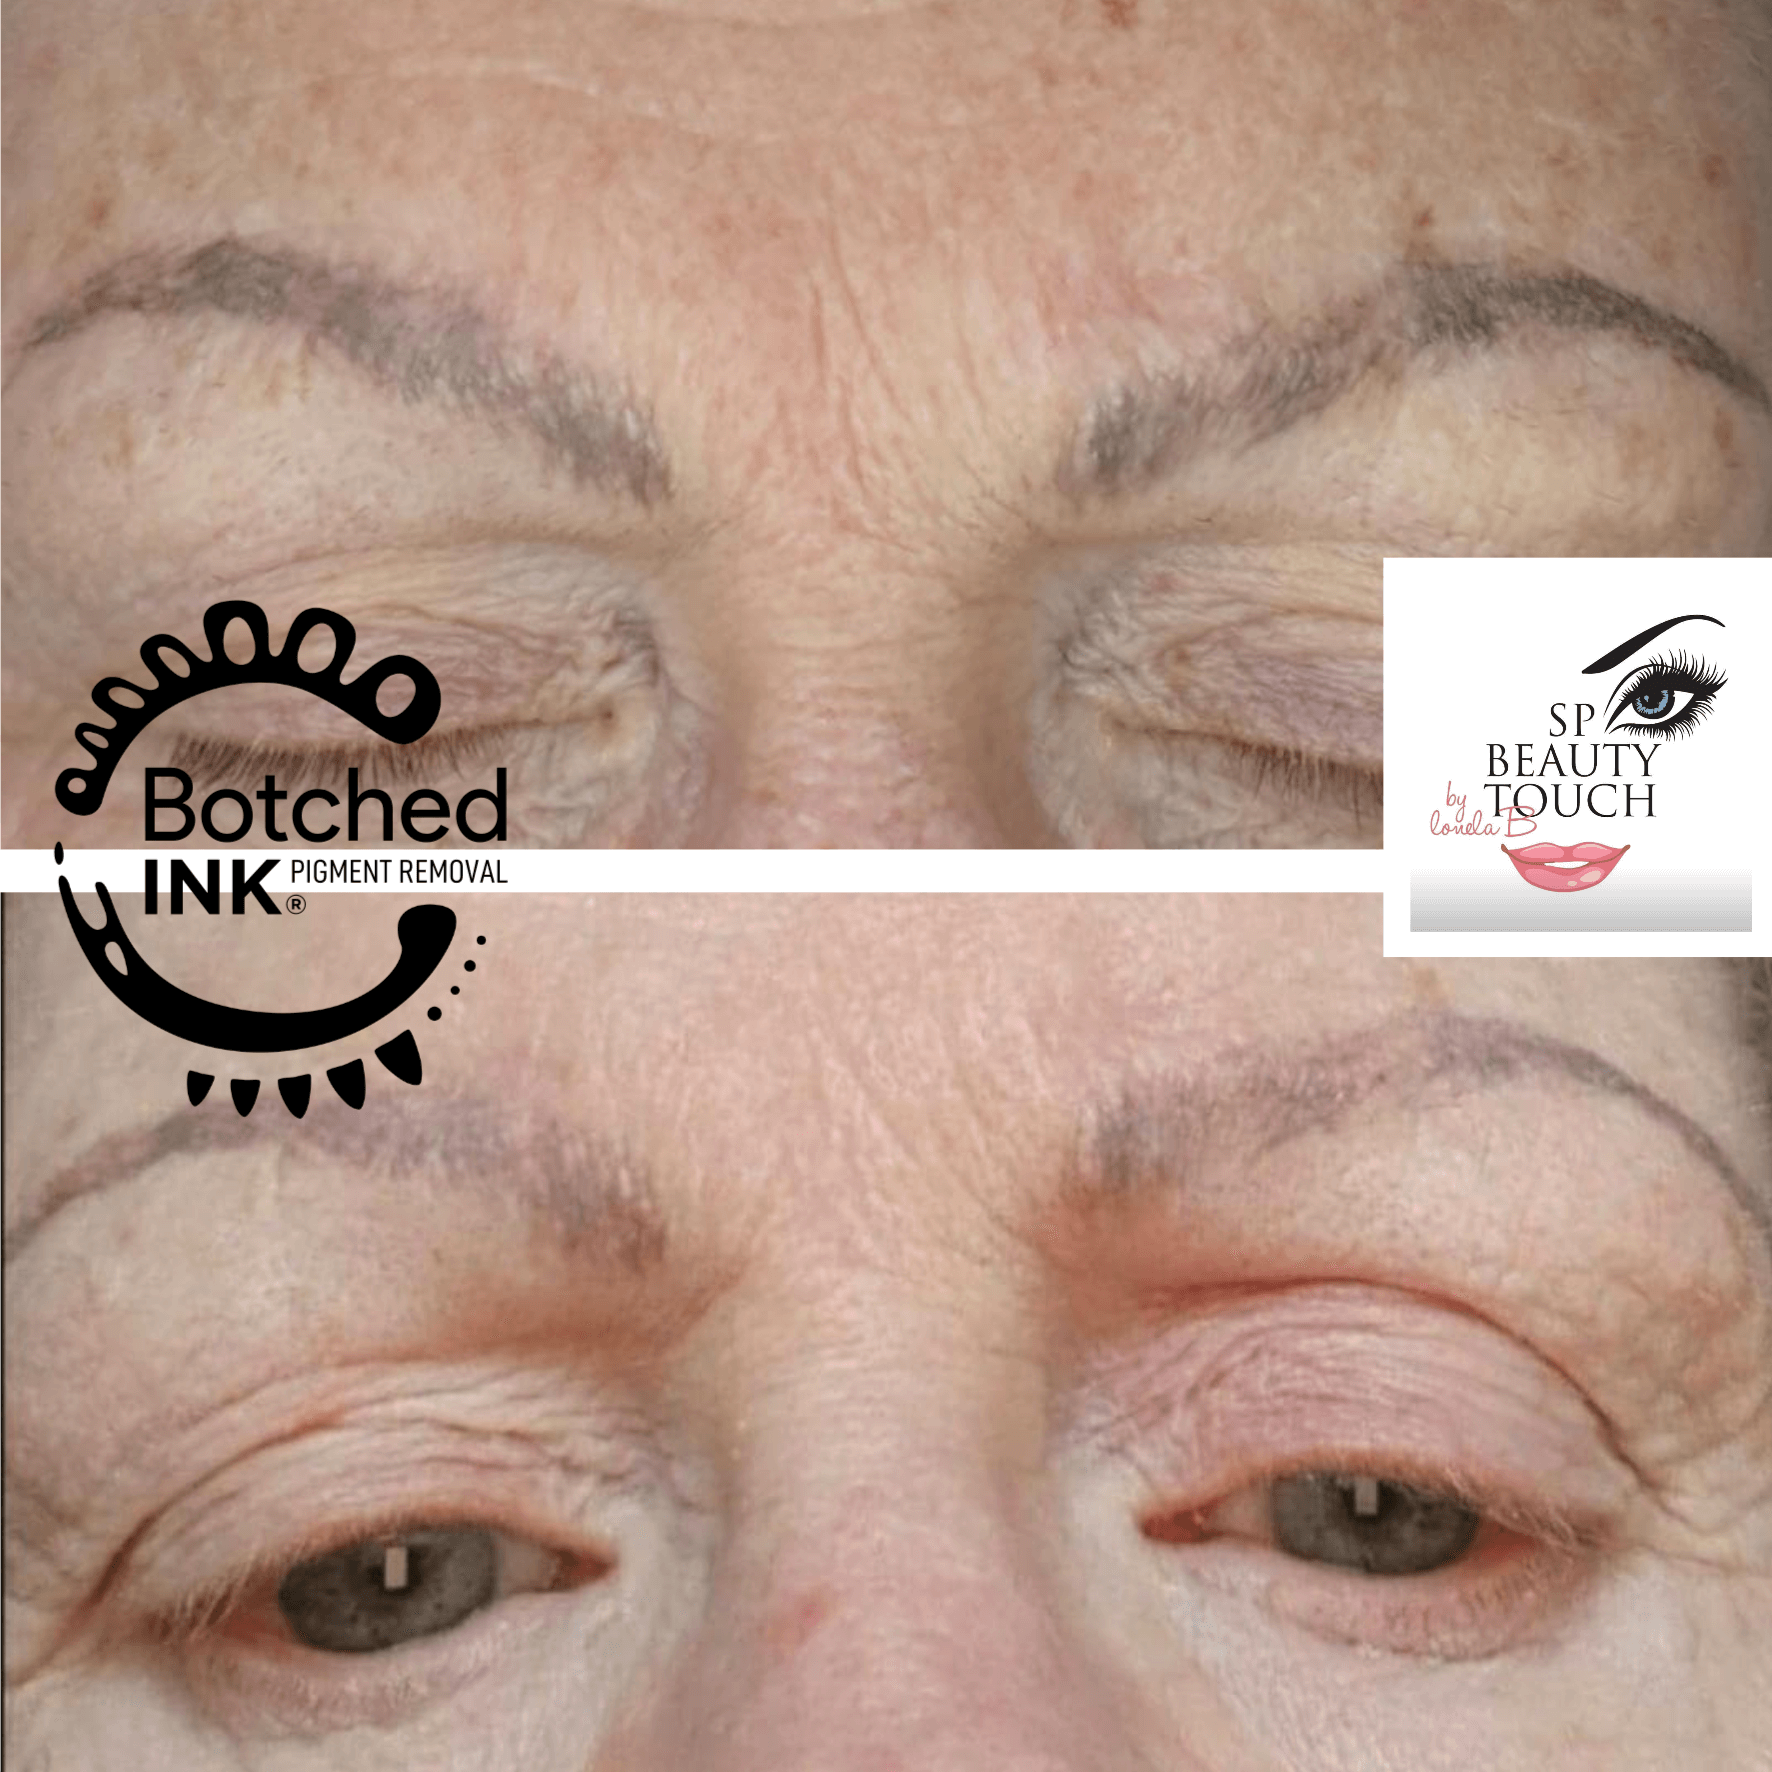 Botched Ink® saline tattoo removal before and after photos microblading, eyebrow tattoo, permanent makeup